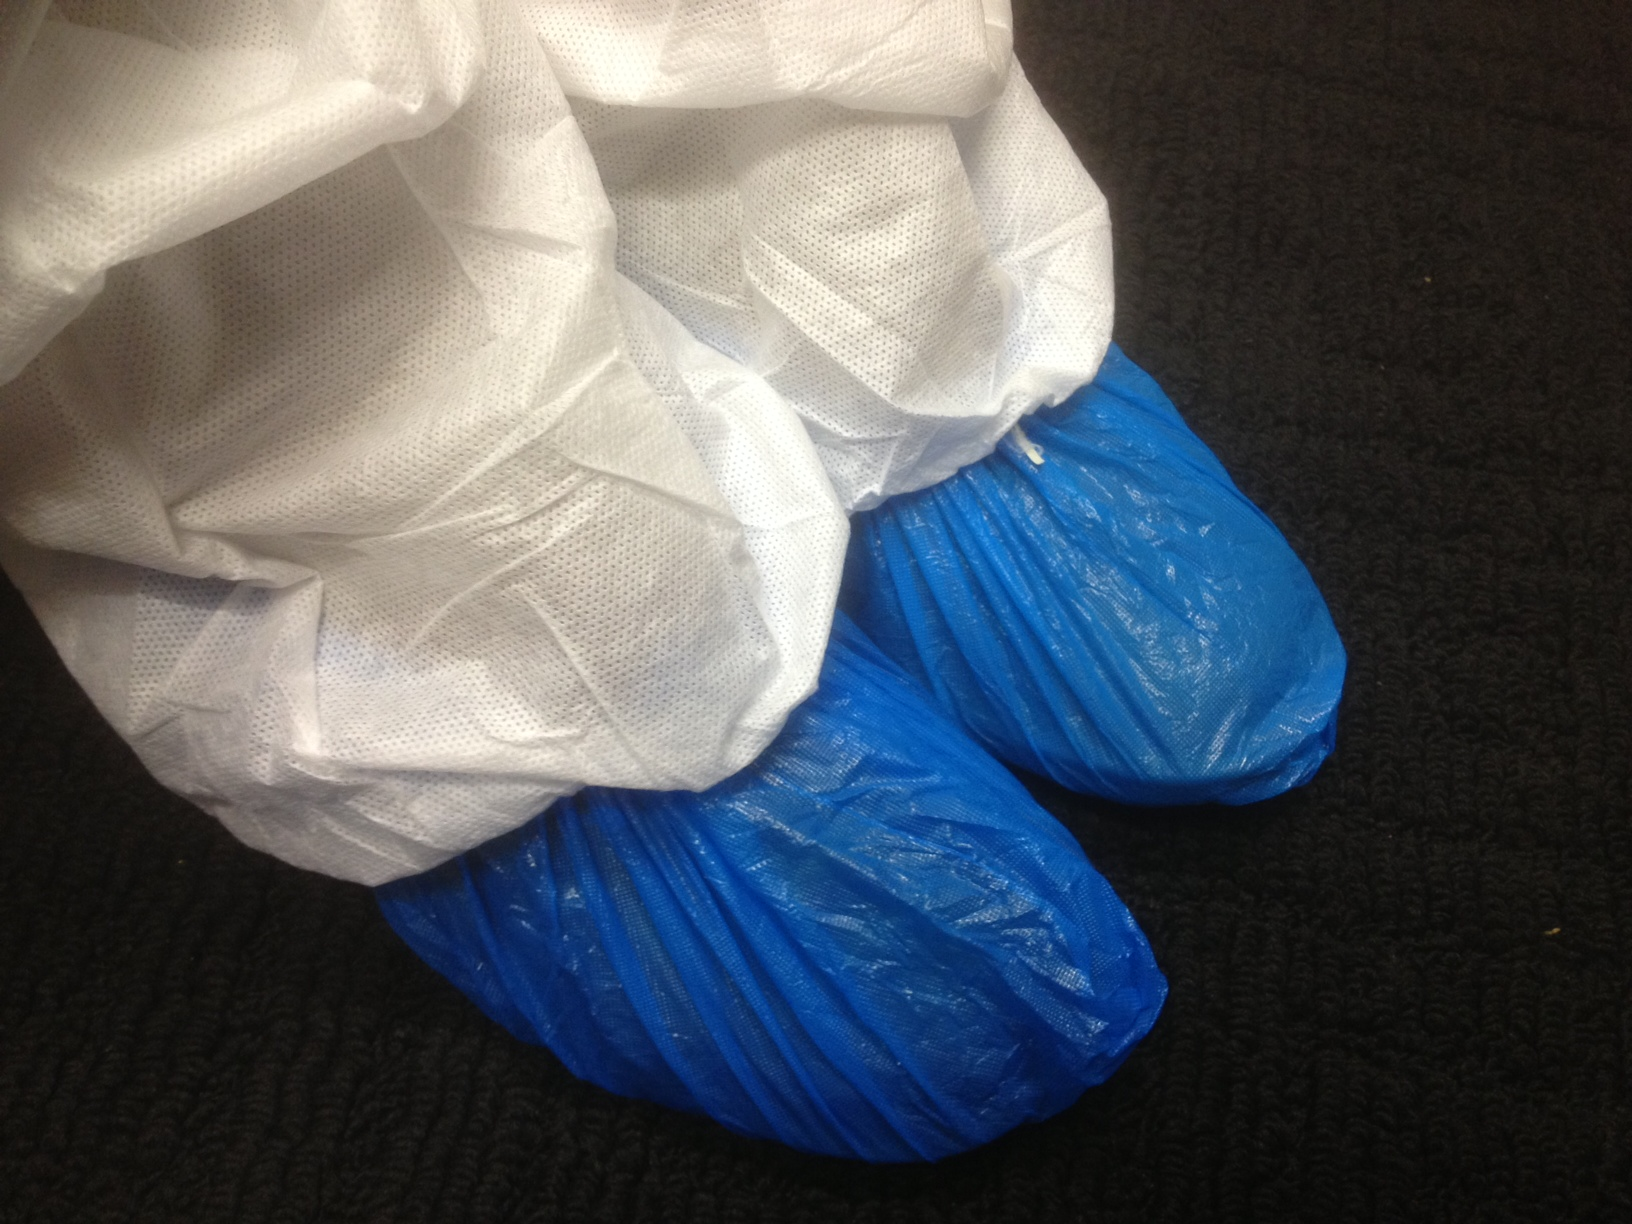 100 50 Pairs Crime Scene Overshoes